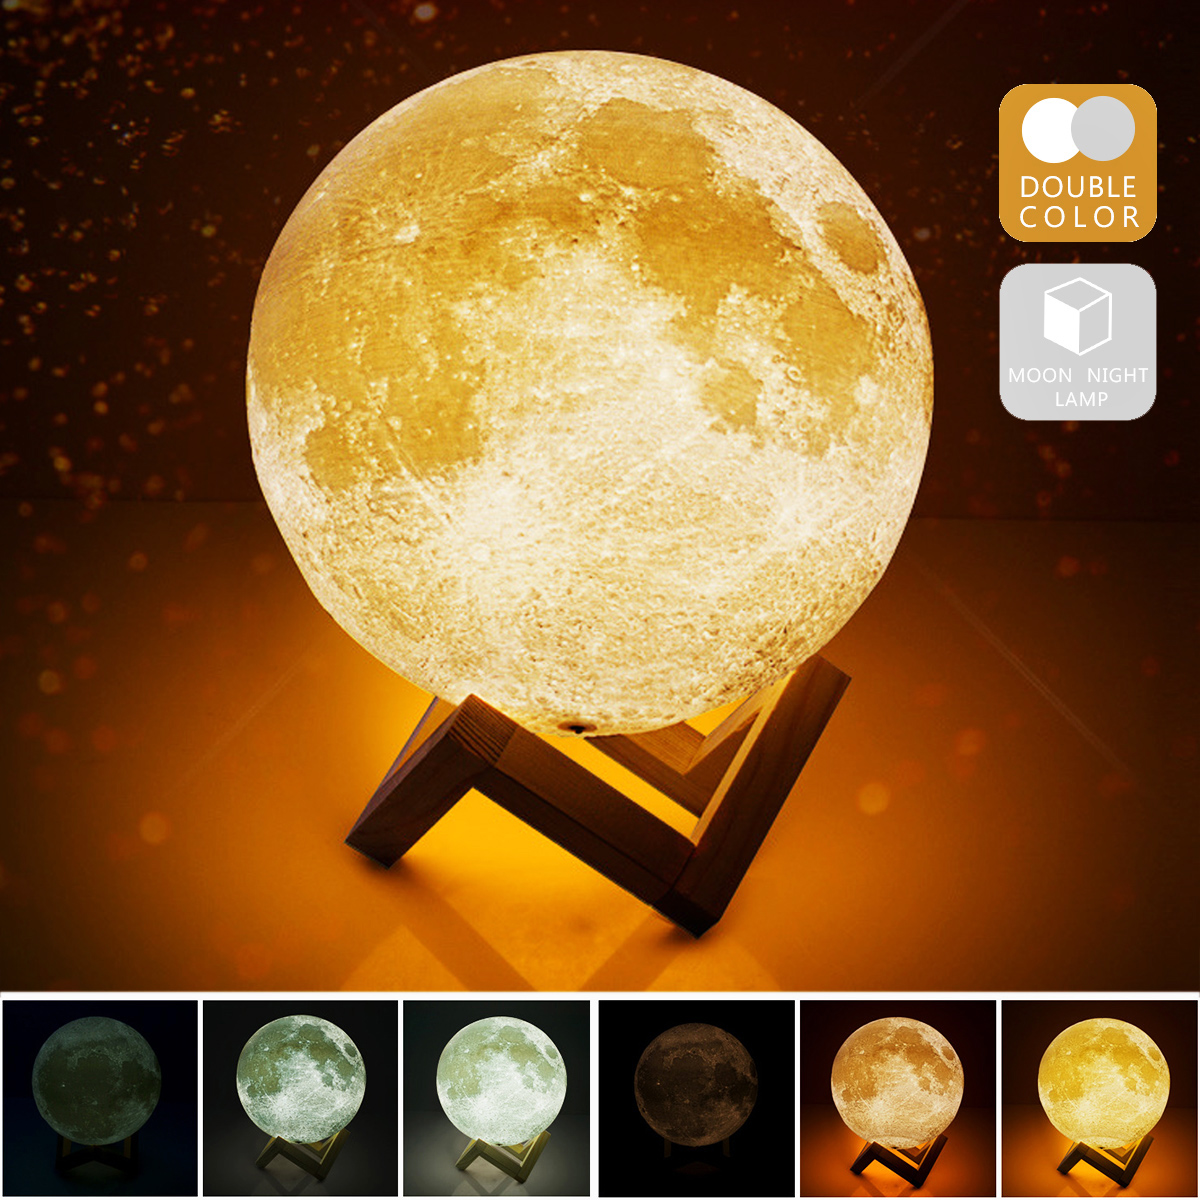 DIDIHOU 3D Print Rechargeable Moon Lamp LED Night Light Creative Touch Switch Moon Light For Bedroom Decoration Birthday Gift